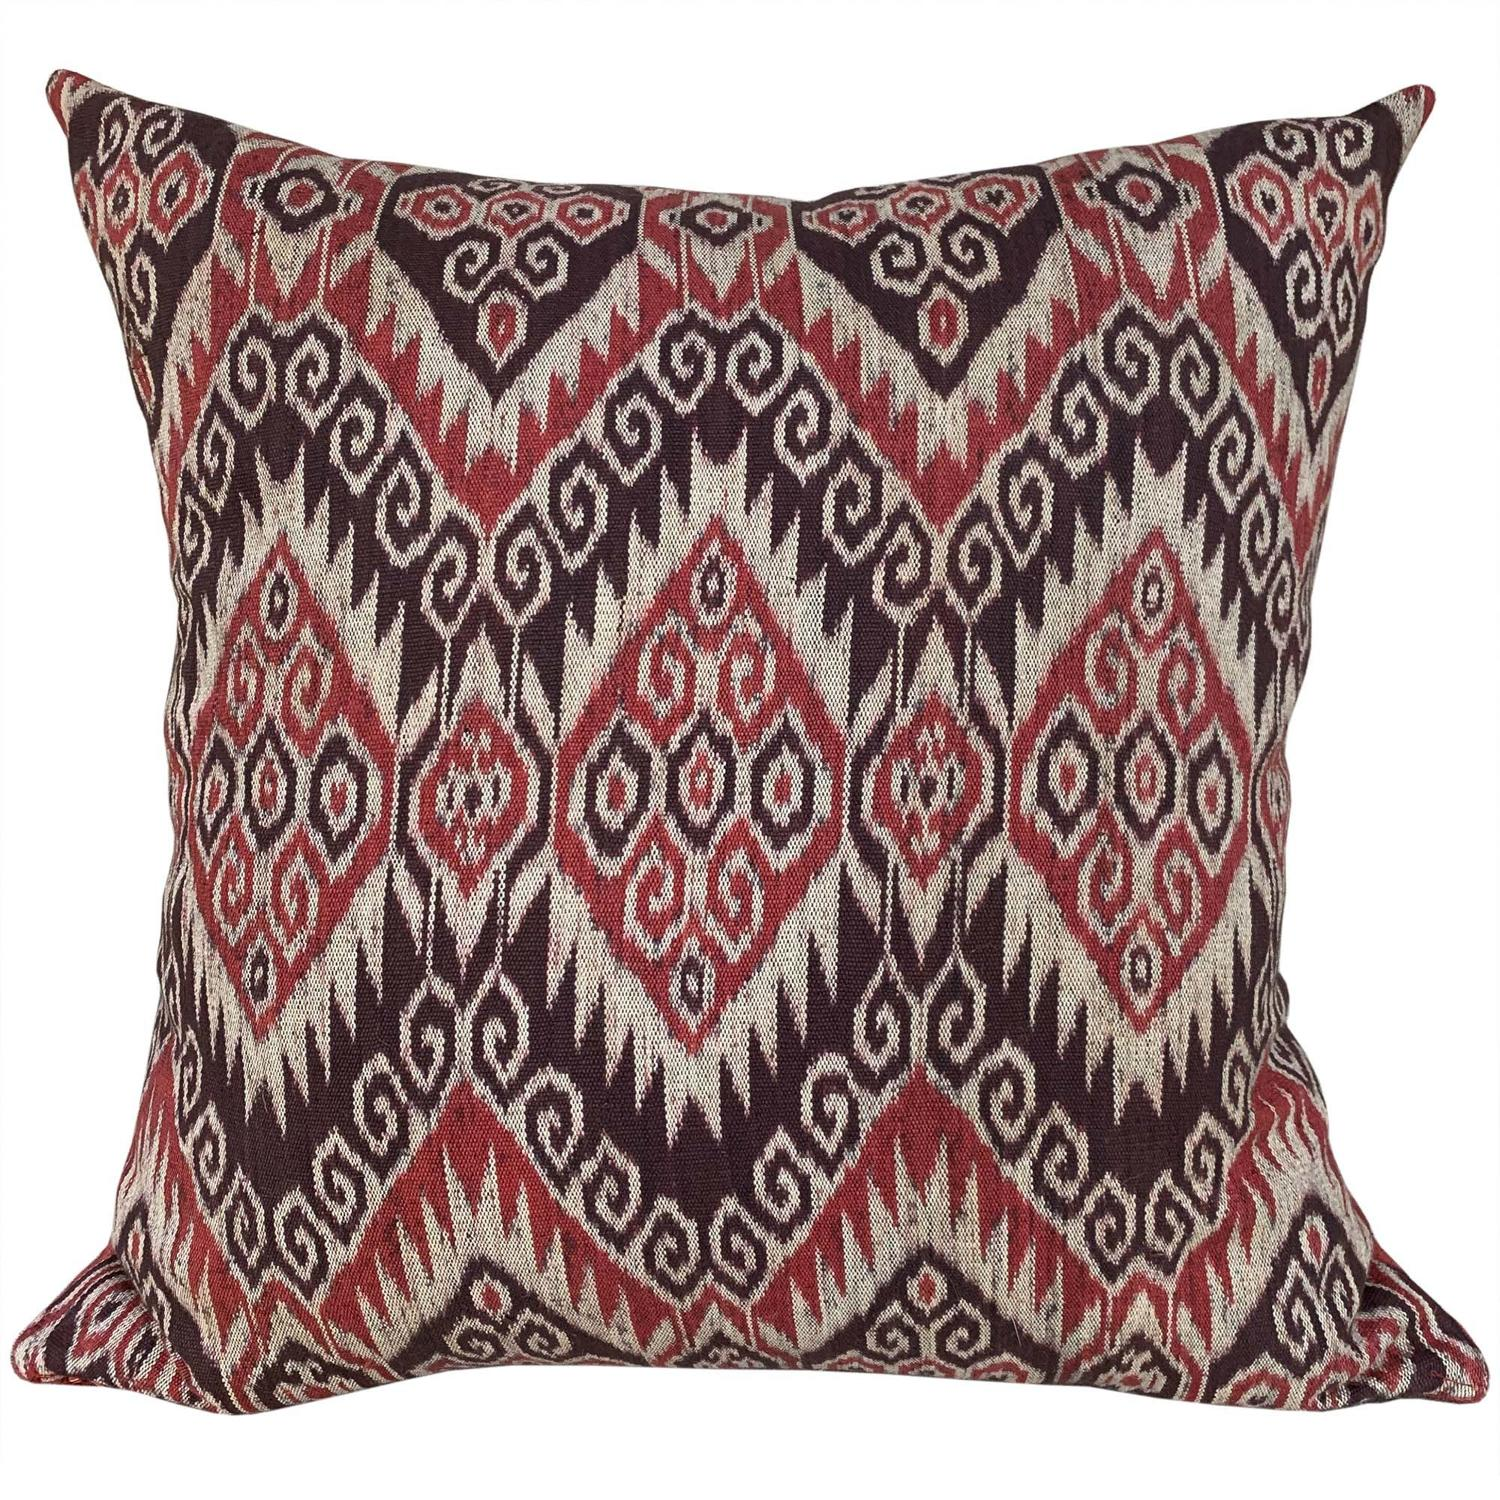 Timor ikat cushion